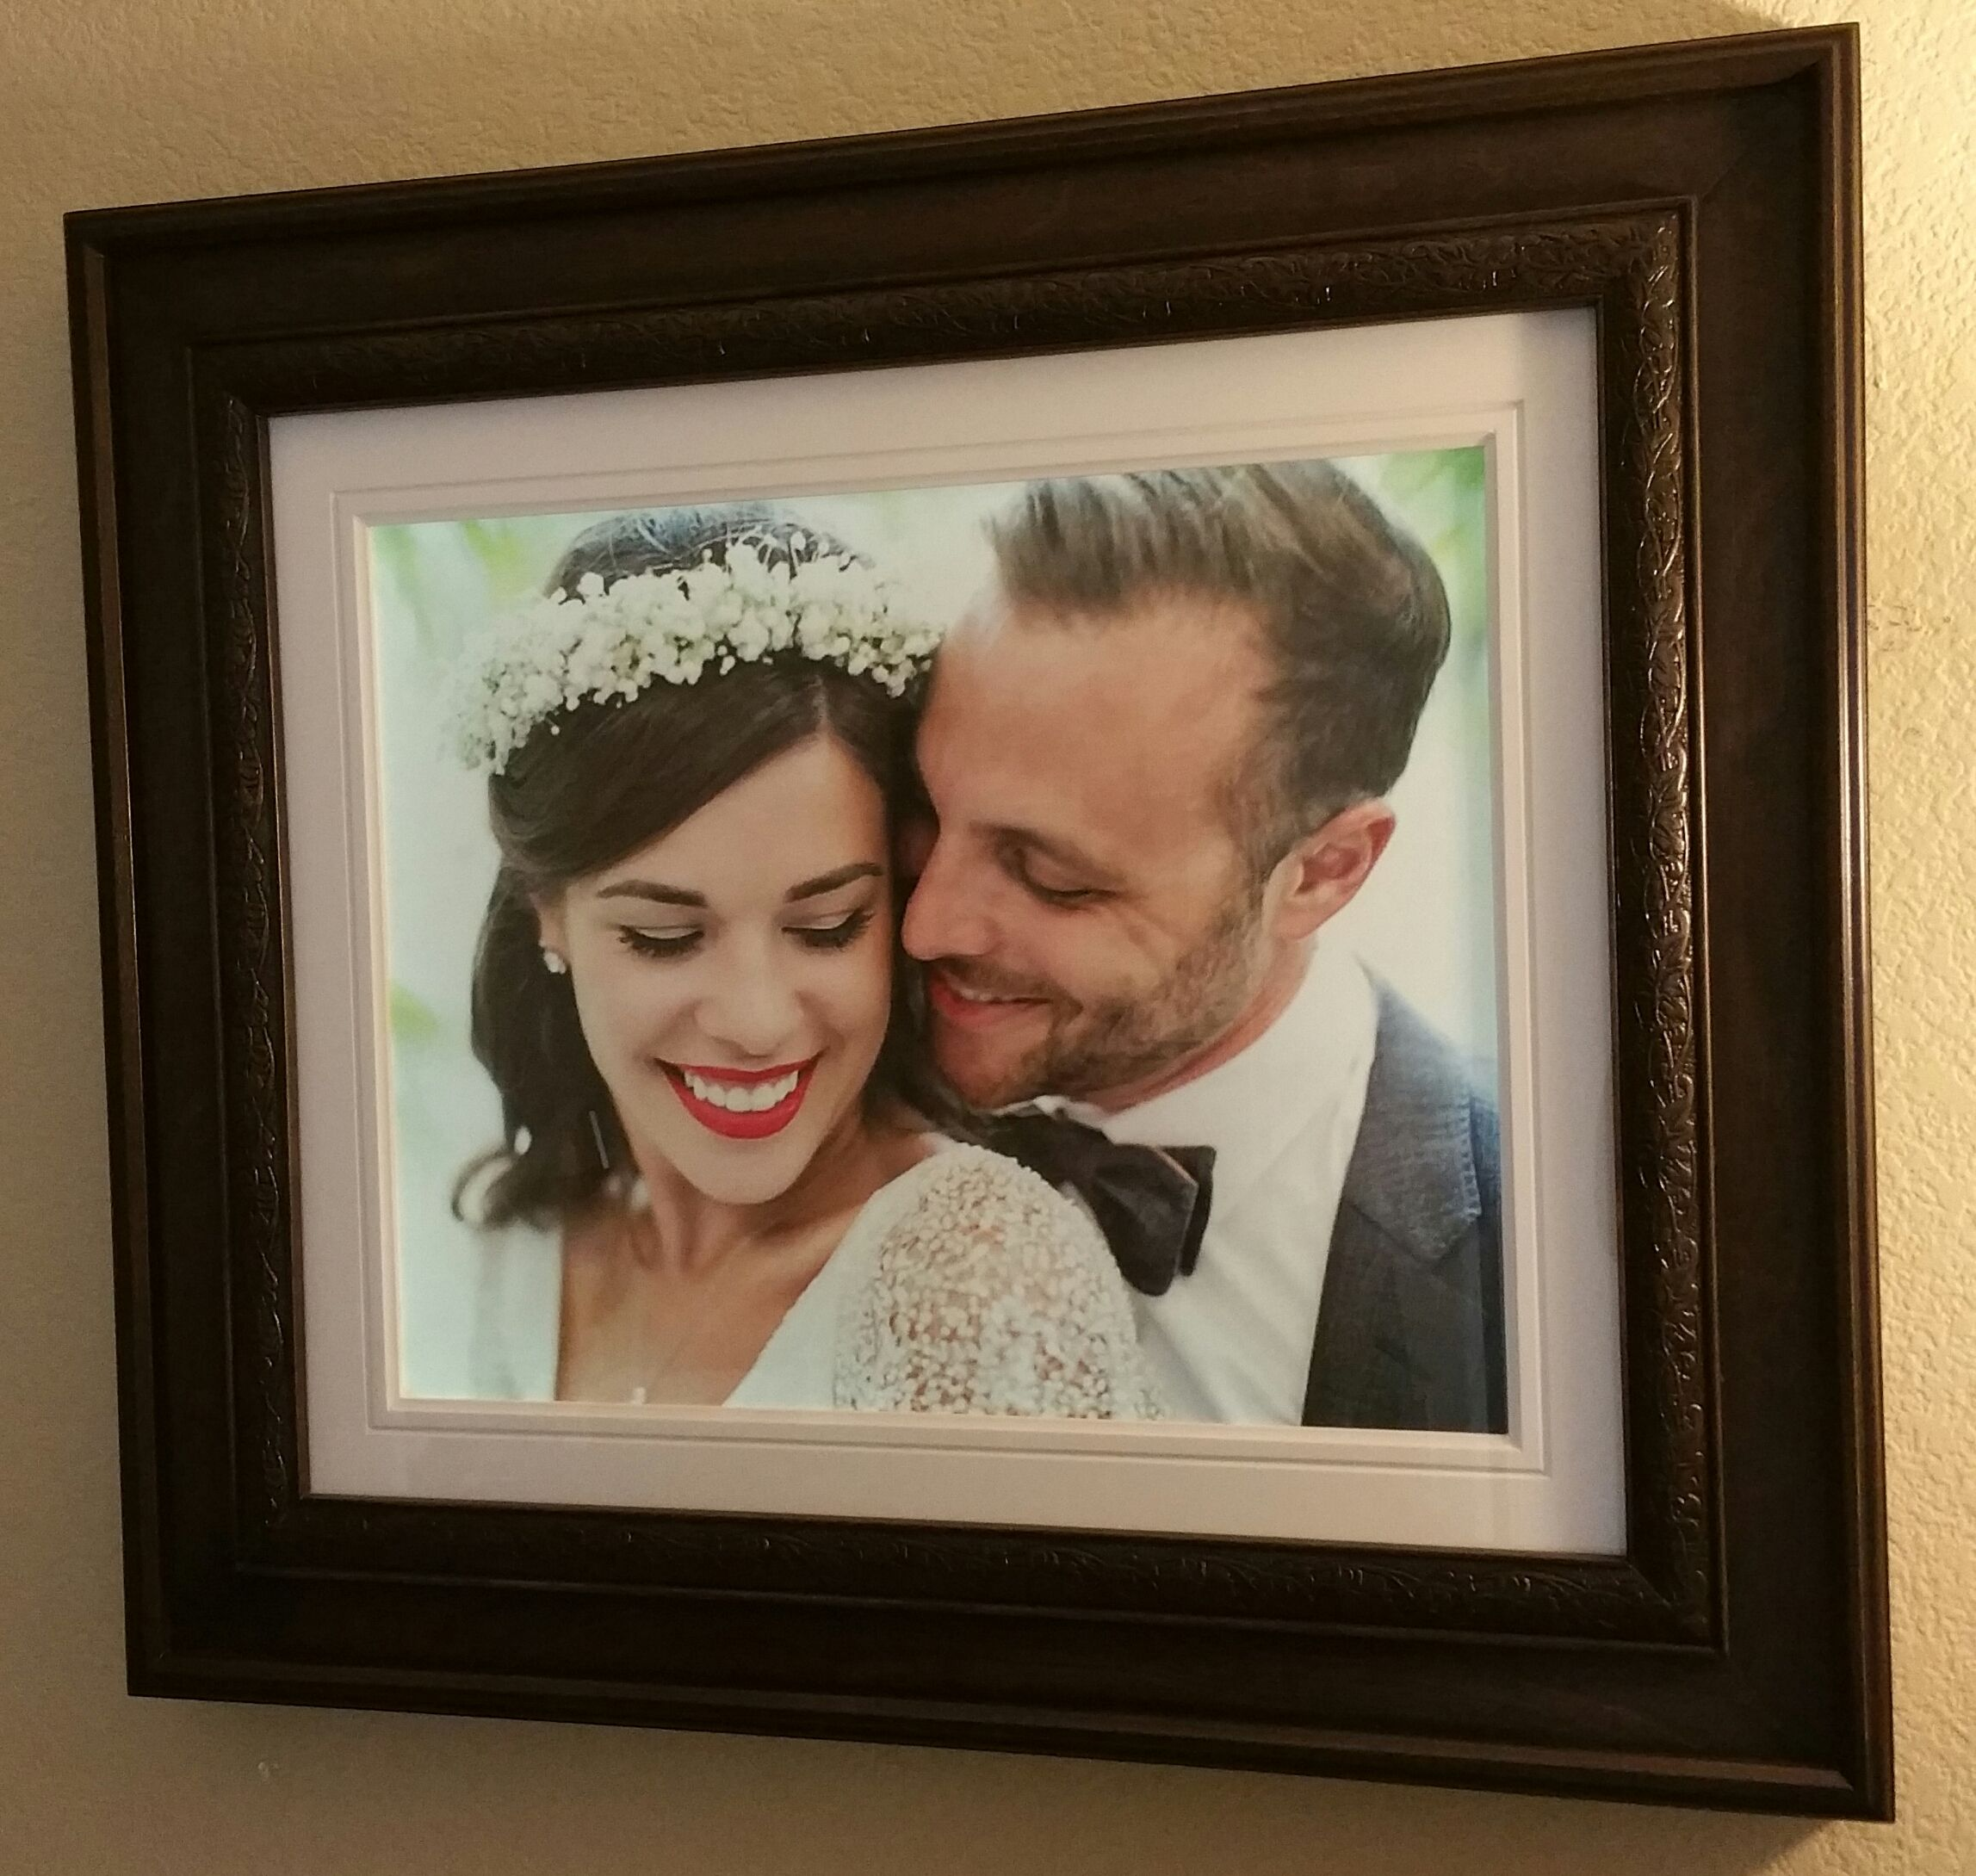 Hand Made 16x20 Backlit Picture Frame by Lighted Images | CustomMade.com